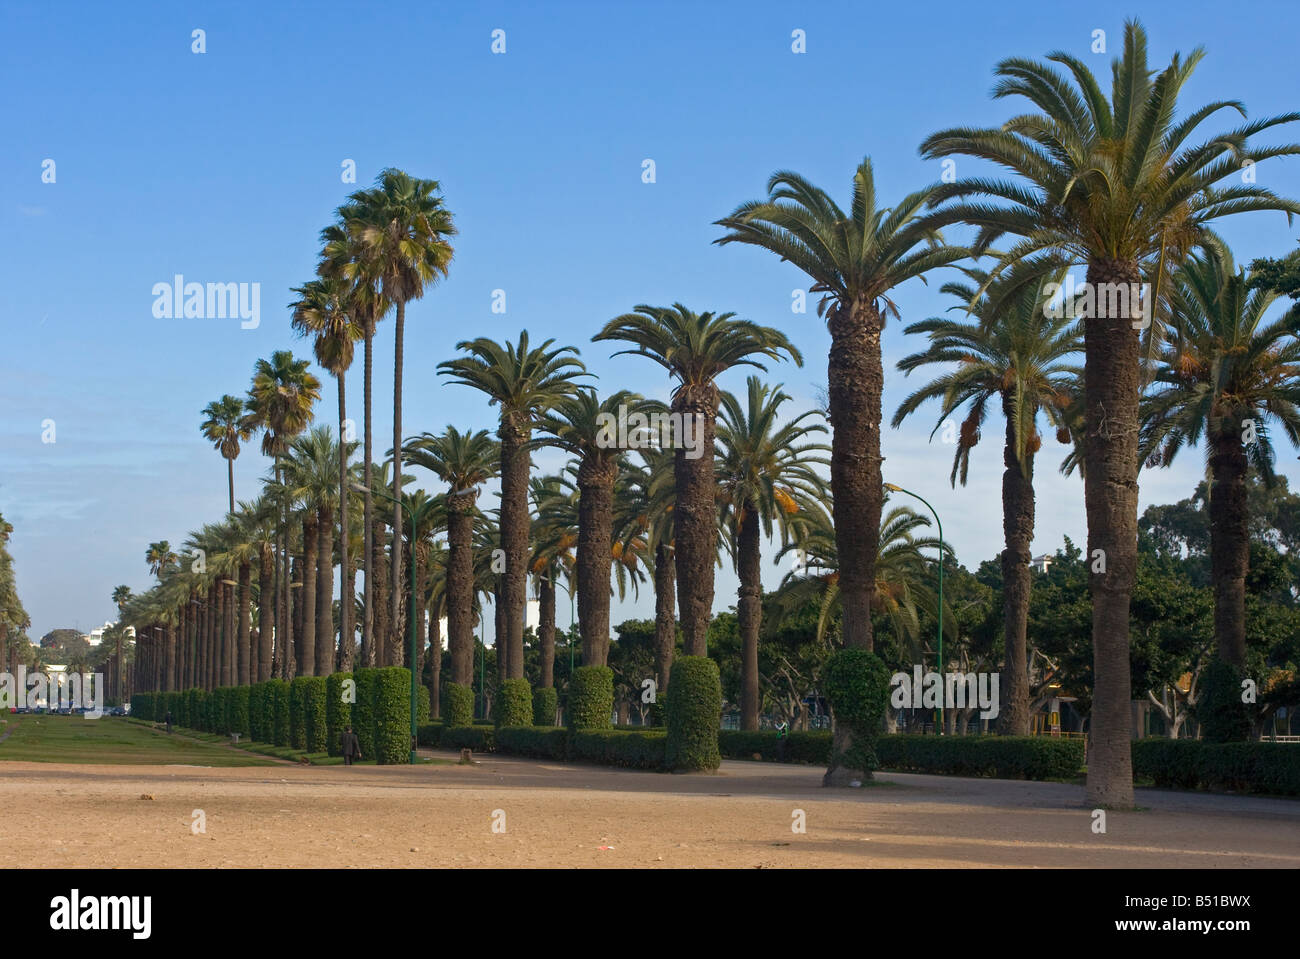 Palm alley in city park, Casablanca, Morocco - Stock Image